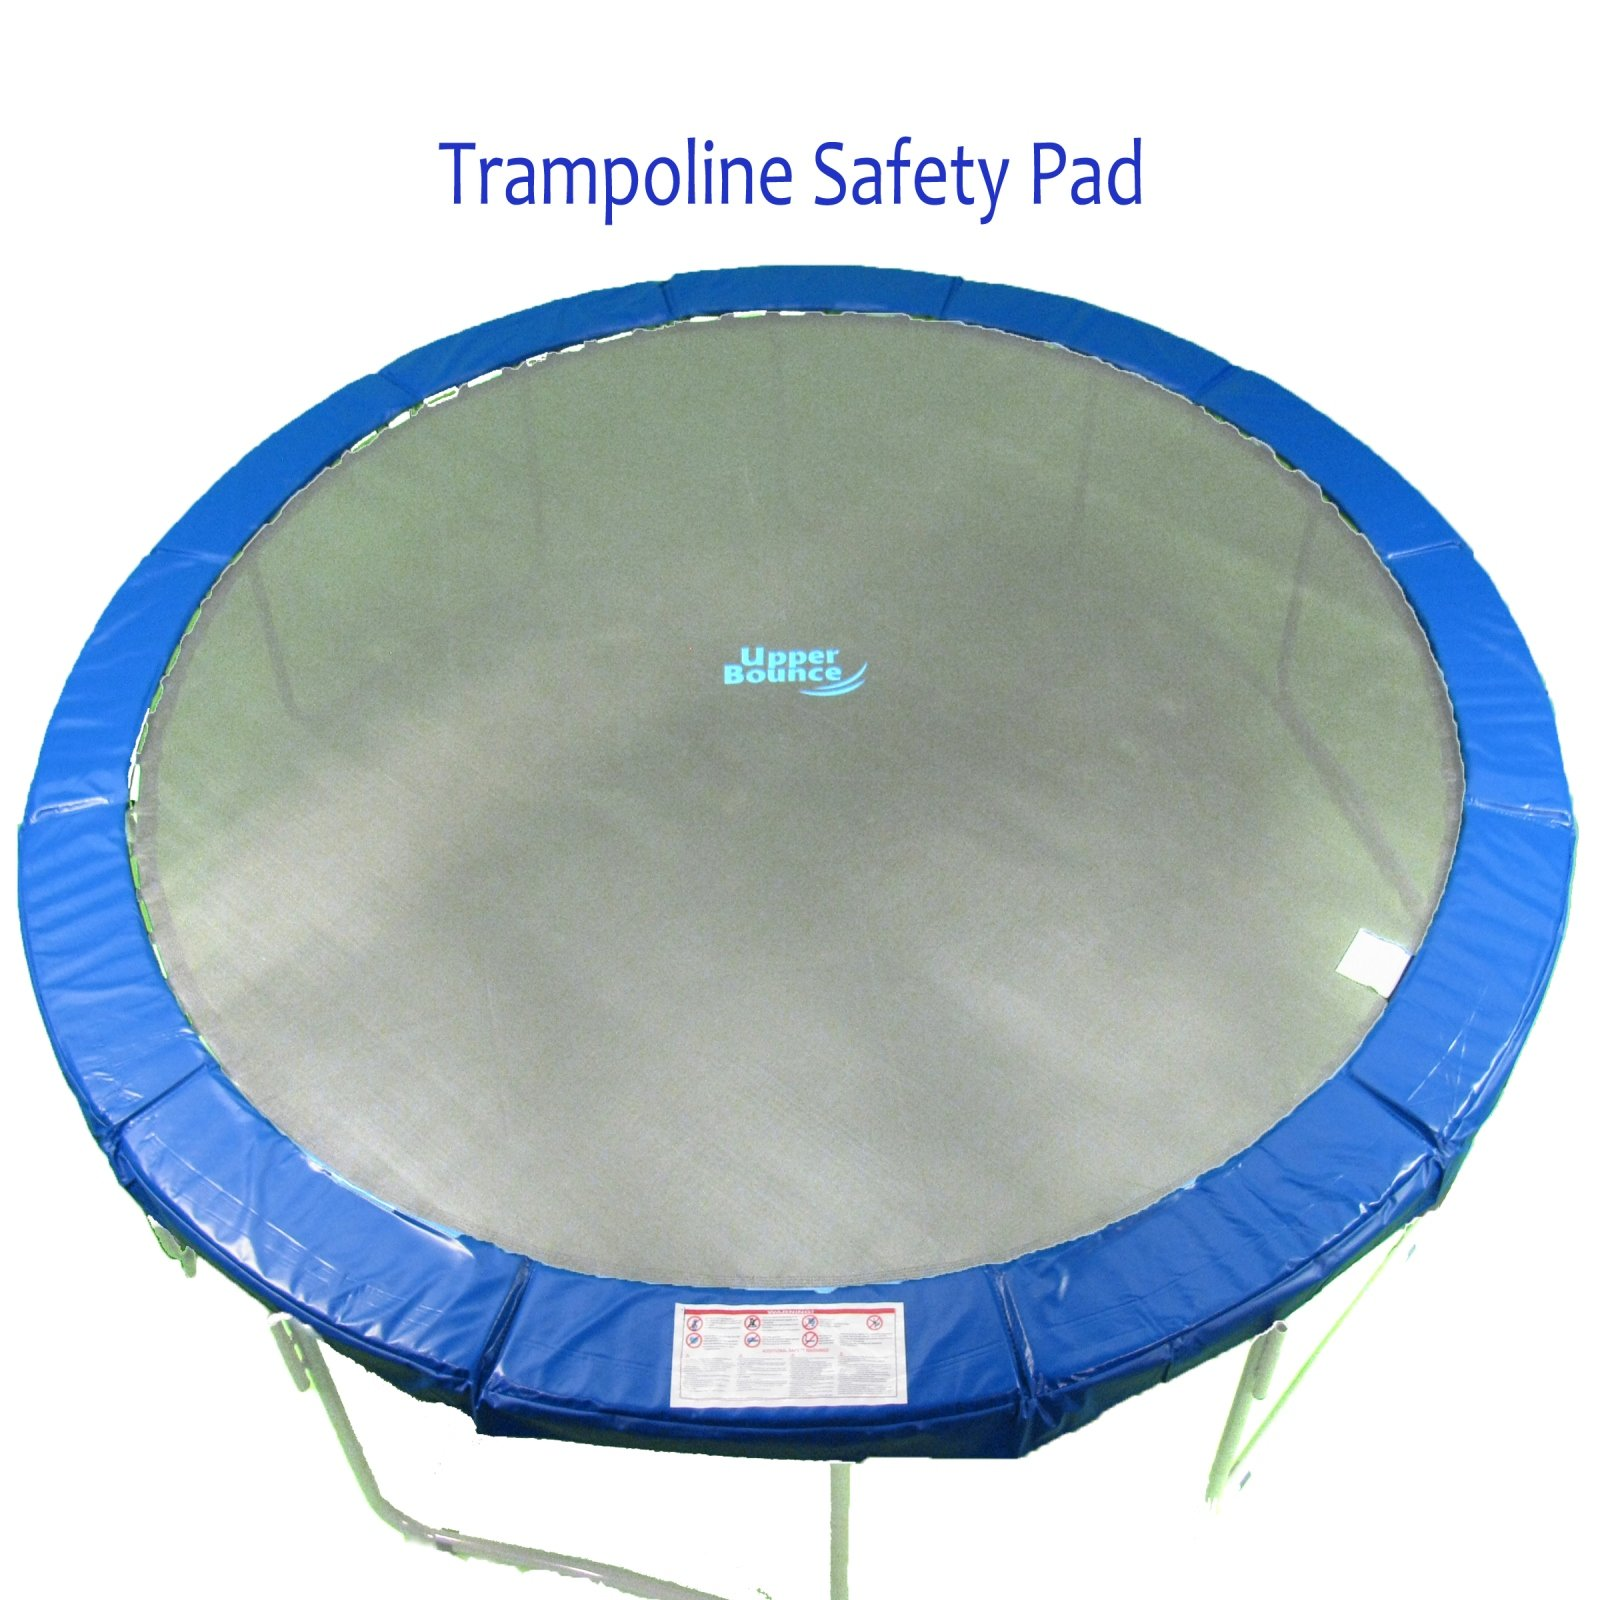 14' Super Trampoline Safety Pad (Spring Cover) Fits for 14 FT. Round Trampoline Frames. 10'' wide - Blue